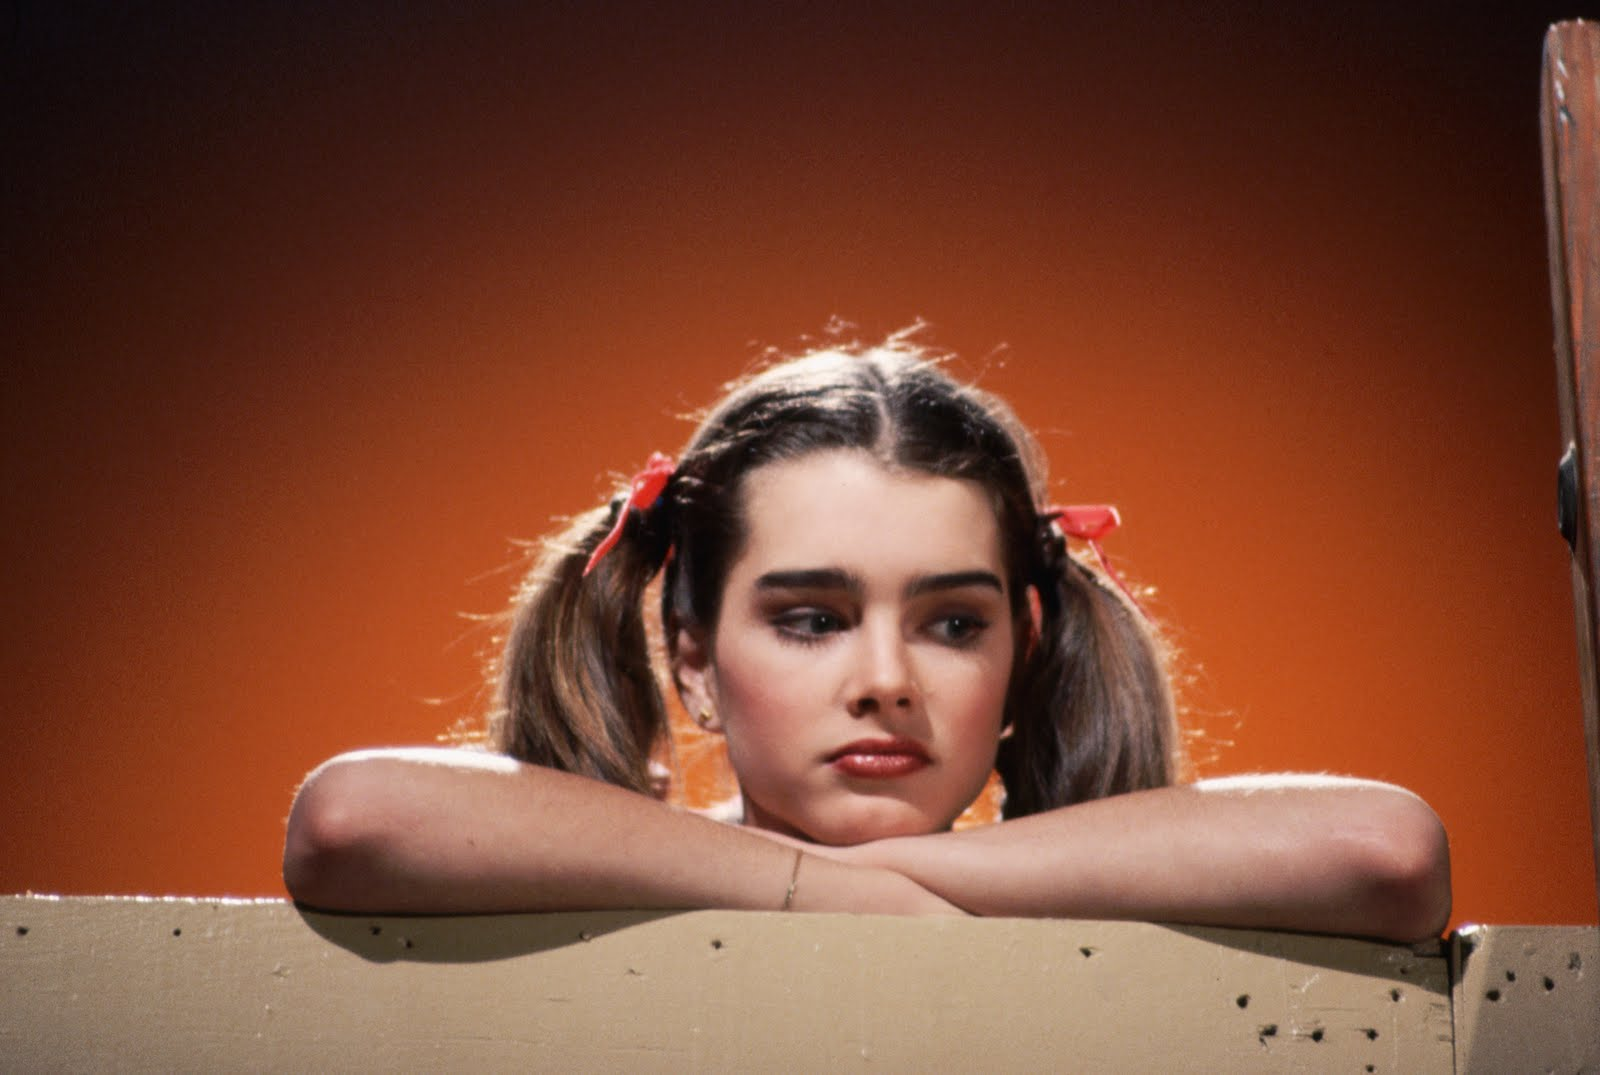 Brooke Shields was quite the 'pretty baby' in pigtails as a young teen ...